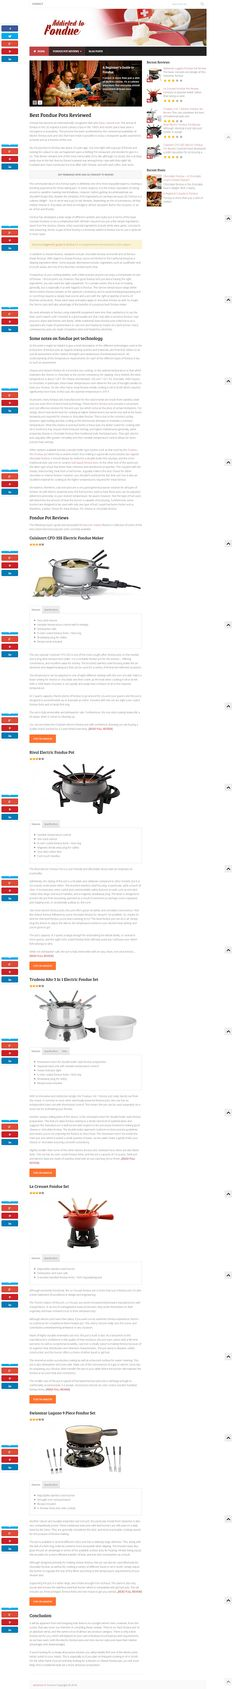 Addicted to Fondue provides Fondue pot reviews from all the best and most popular brands & also gives all basic info about Fondue & Fondue pots. http://www.addictedtofondue.com/